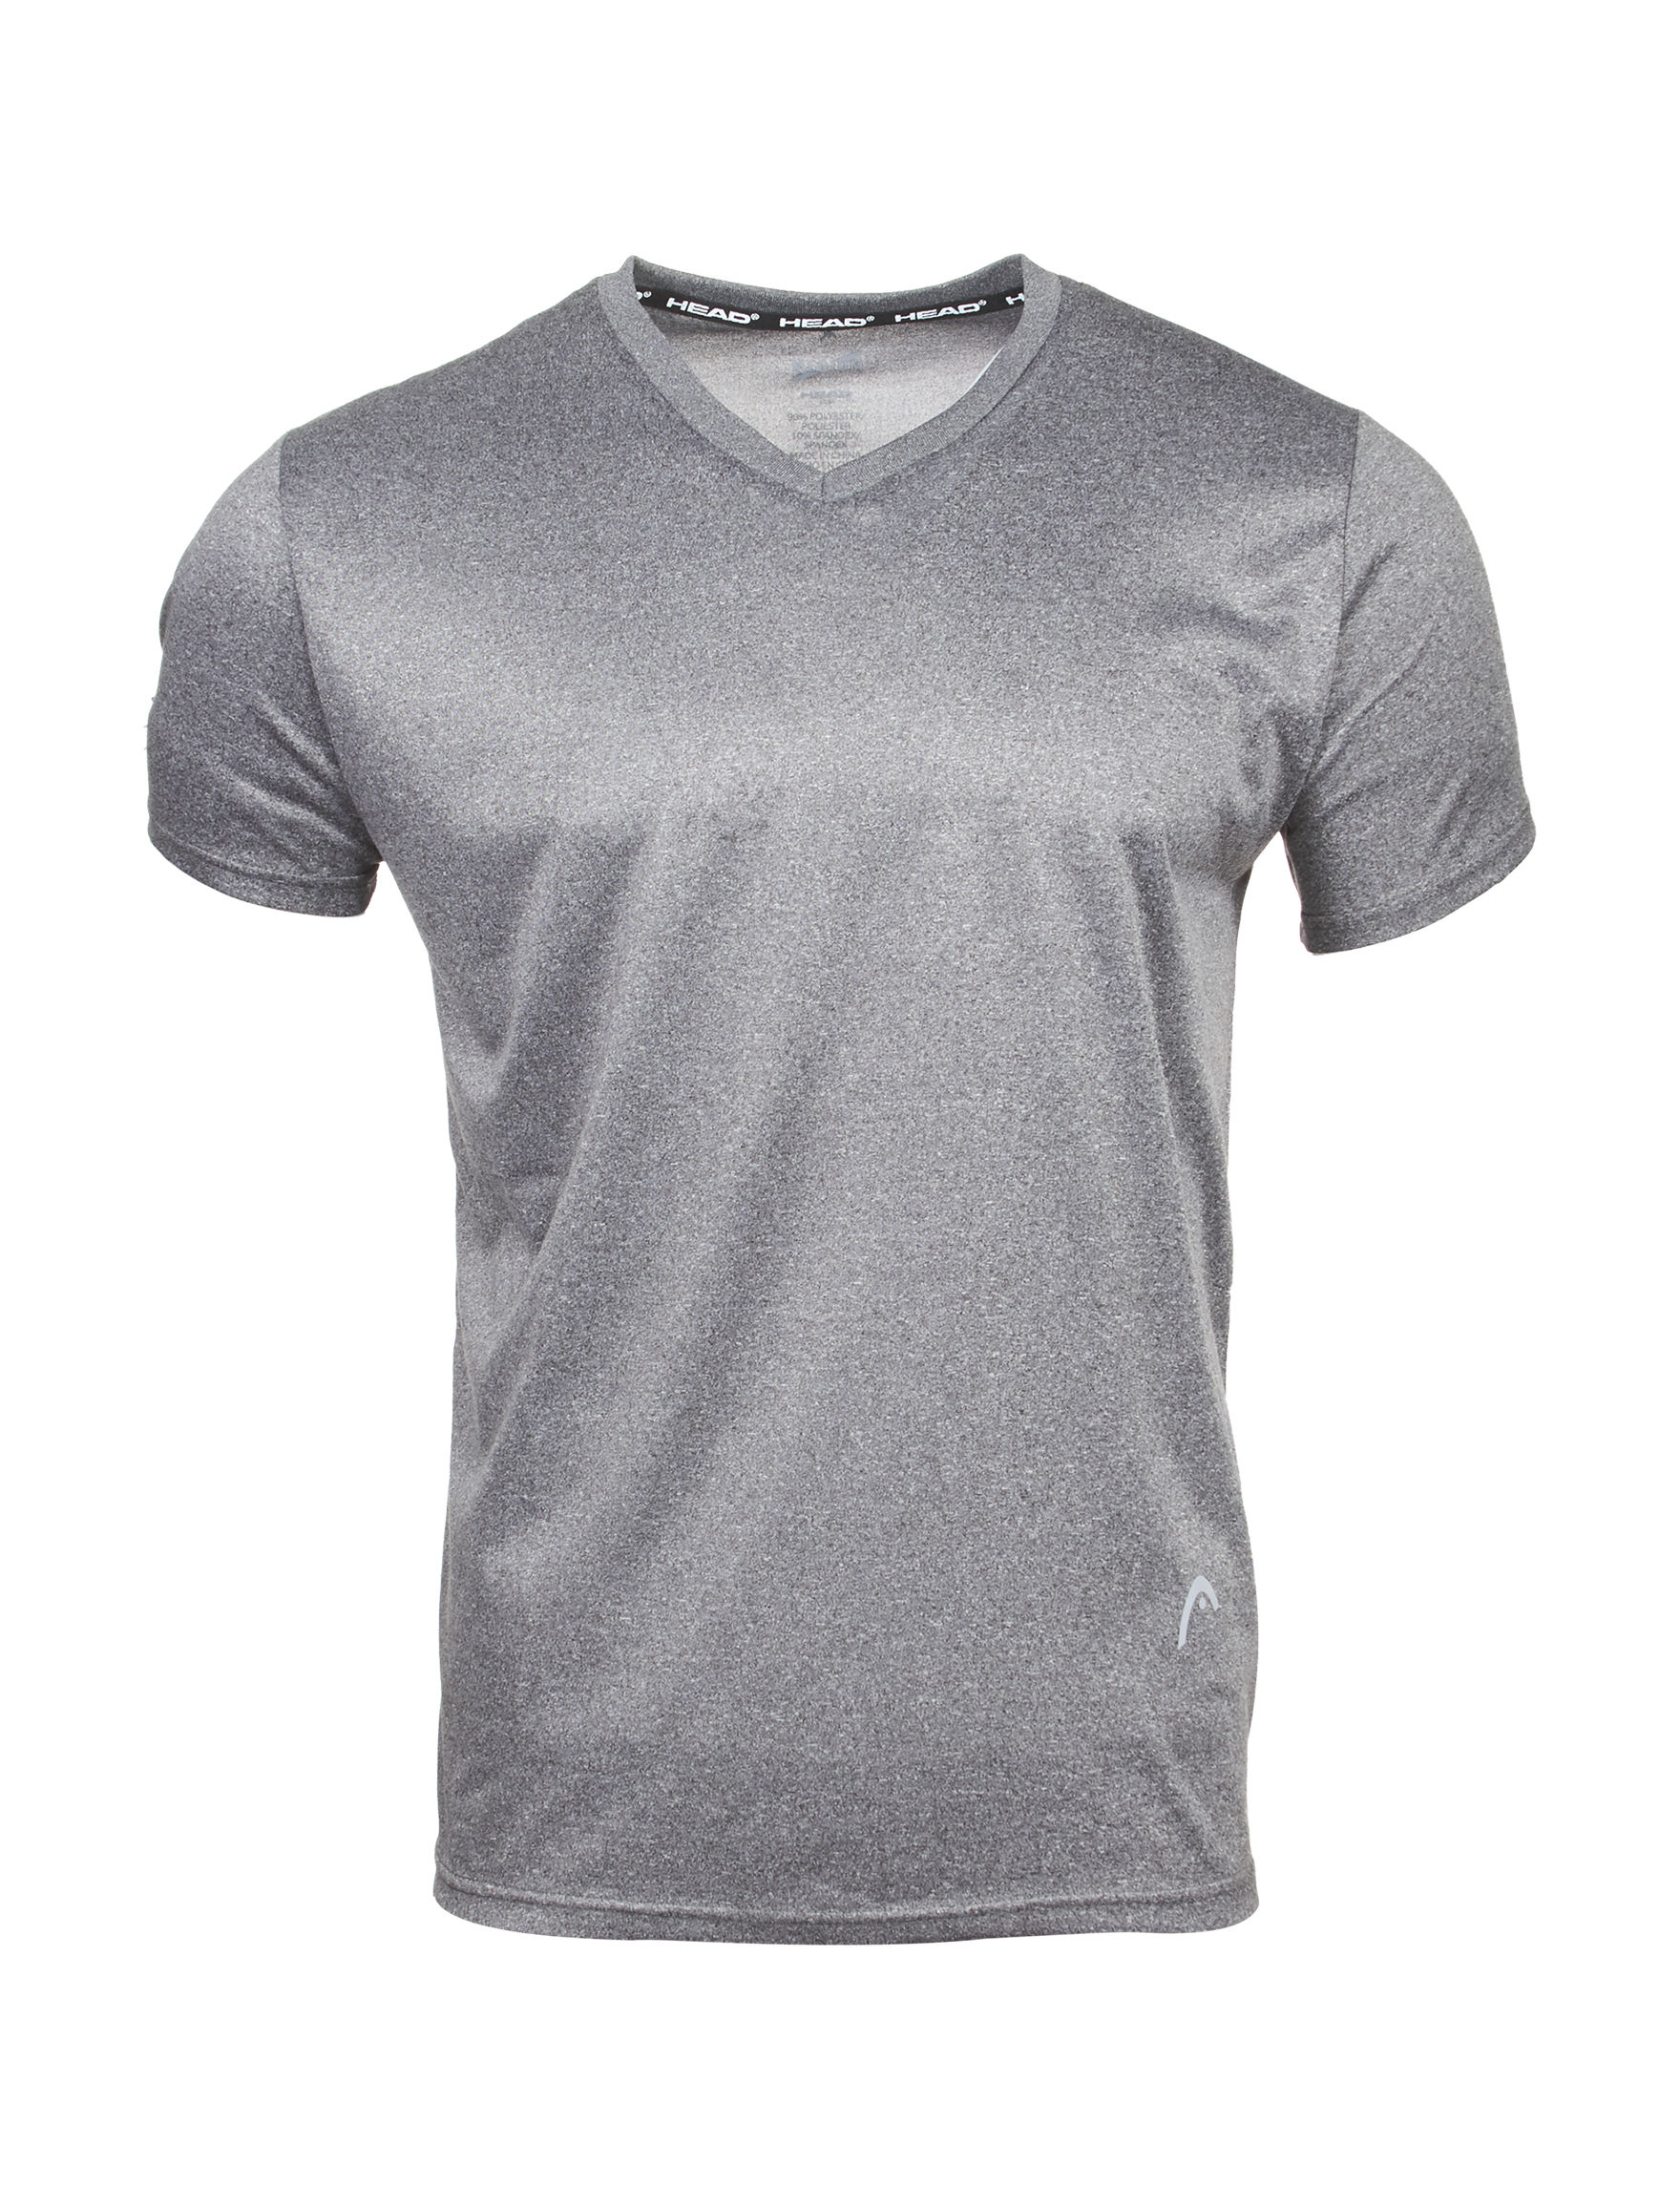 Head Heather Grey Tees & Tanks